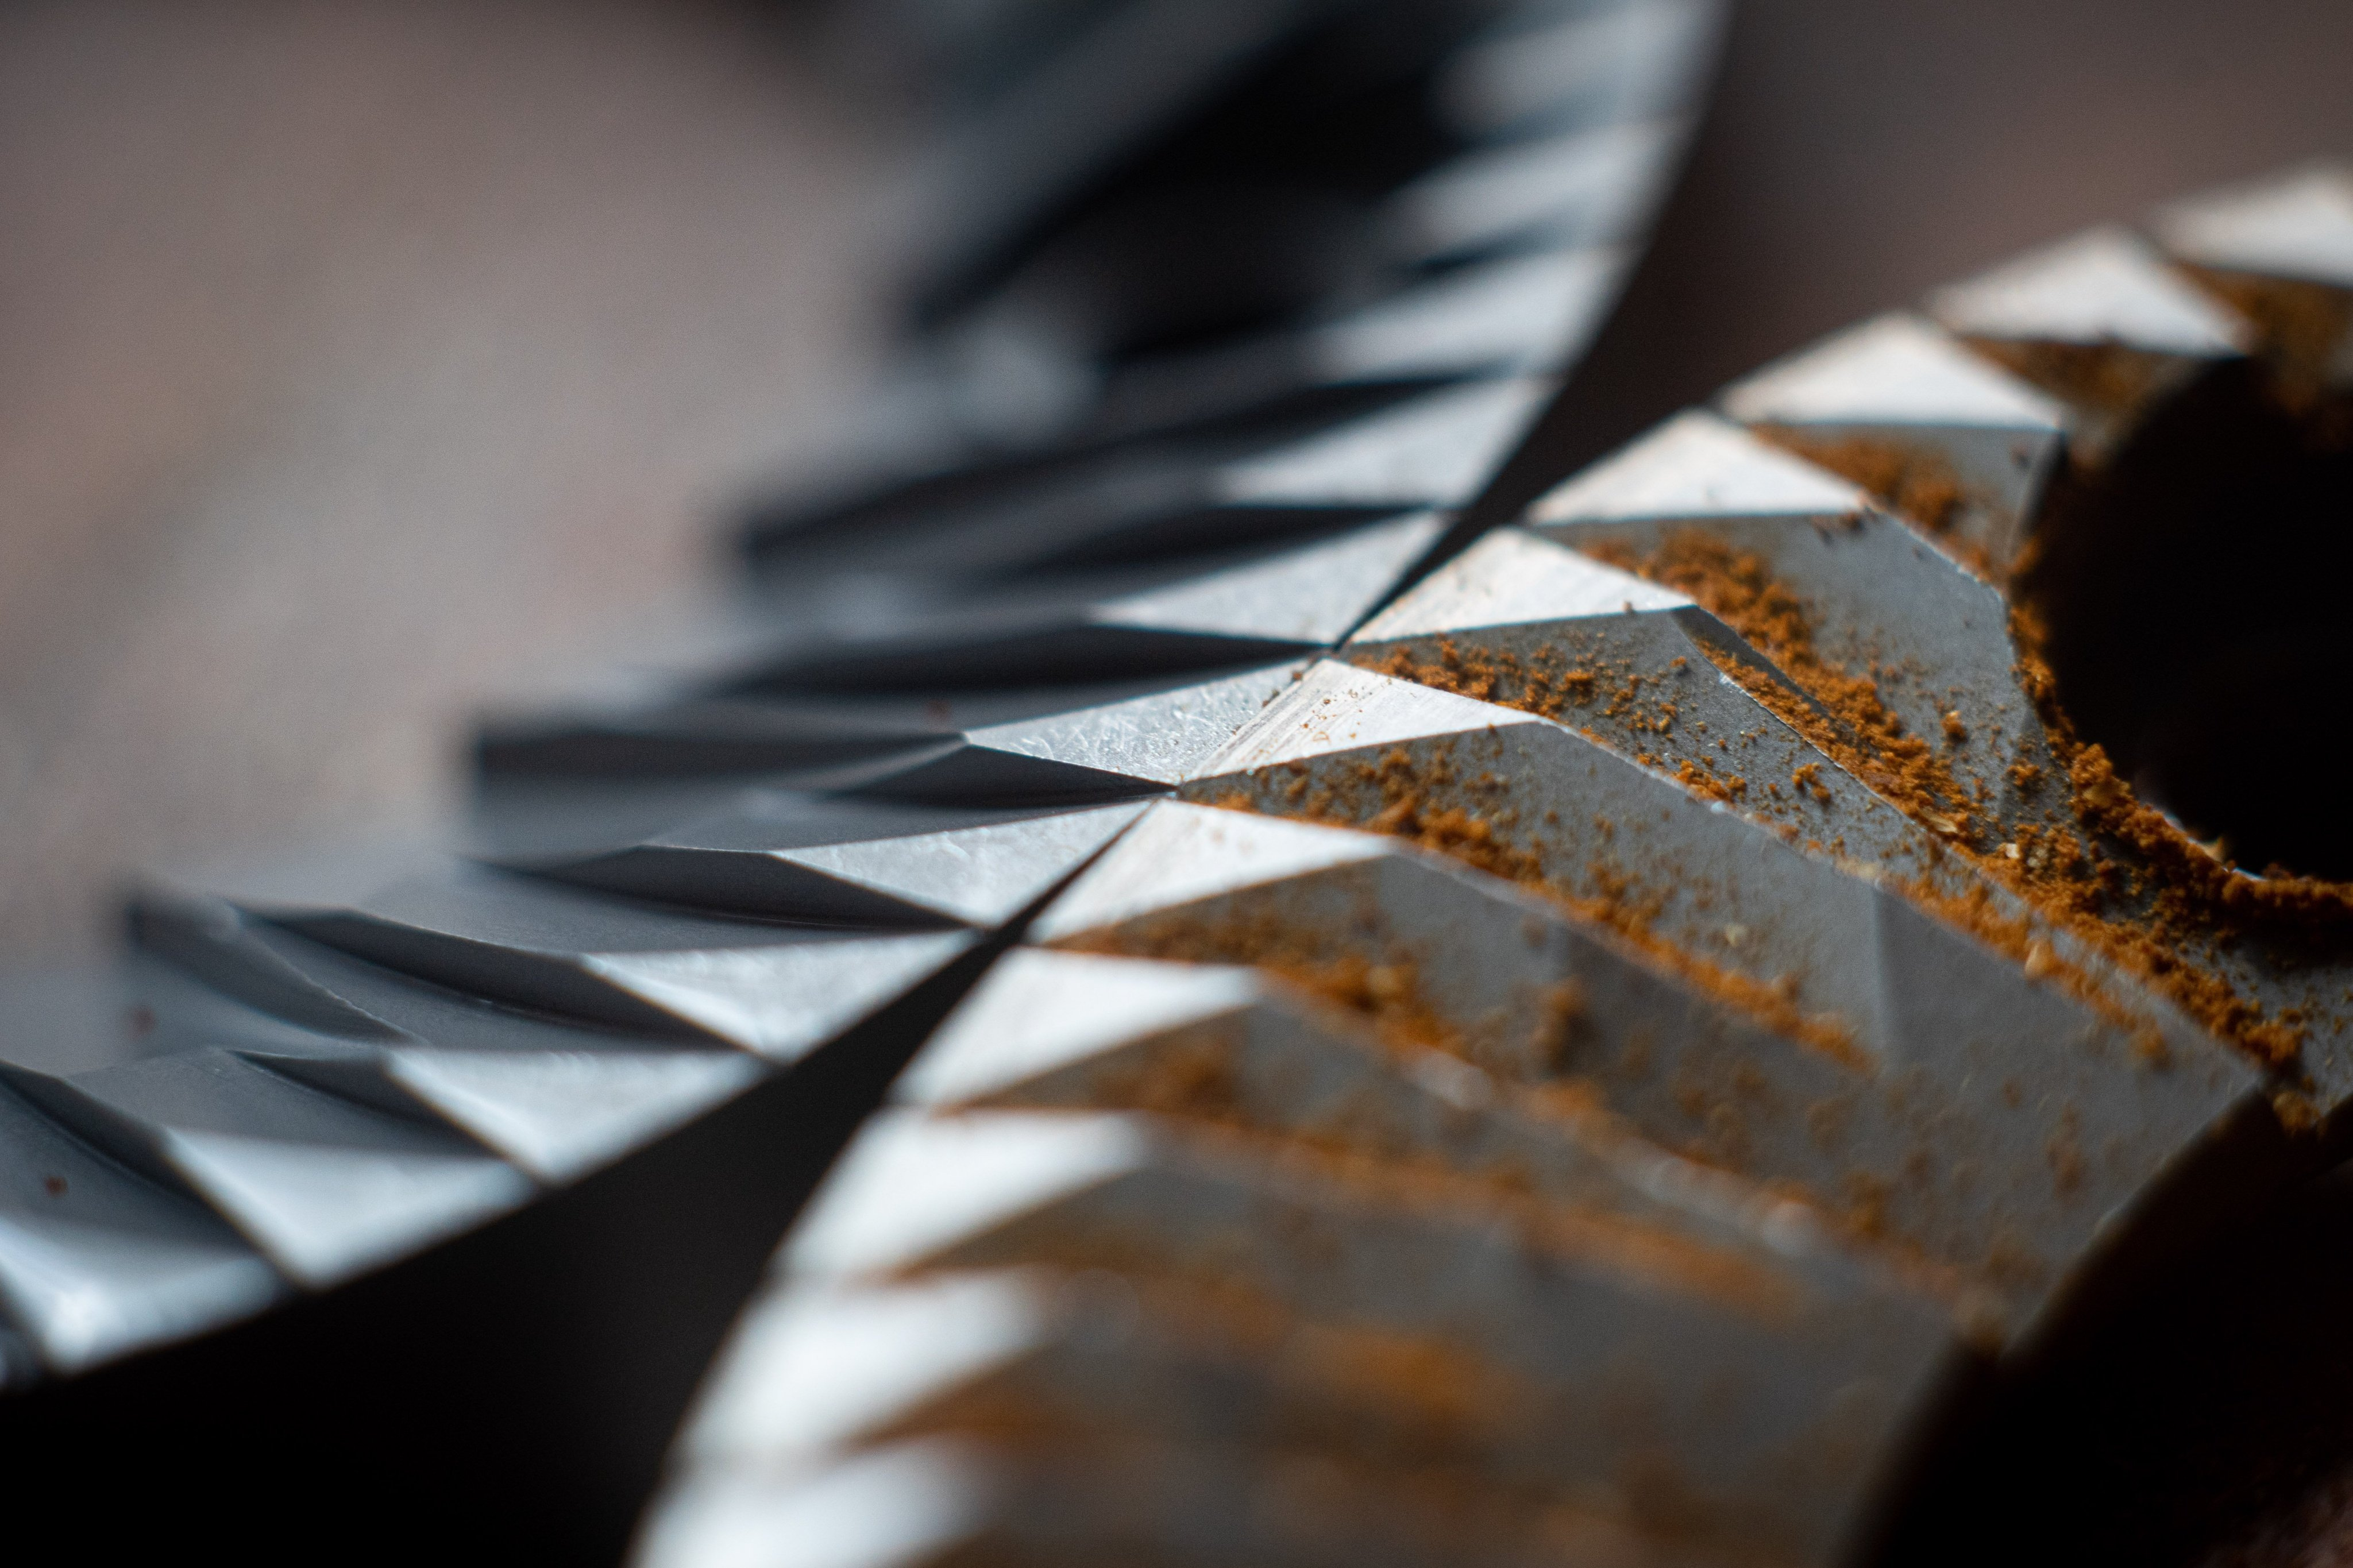 Macro shot of coffee grinder conical burrs 1